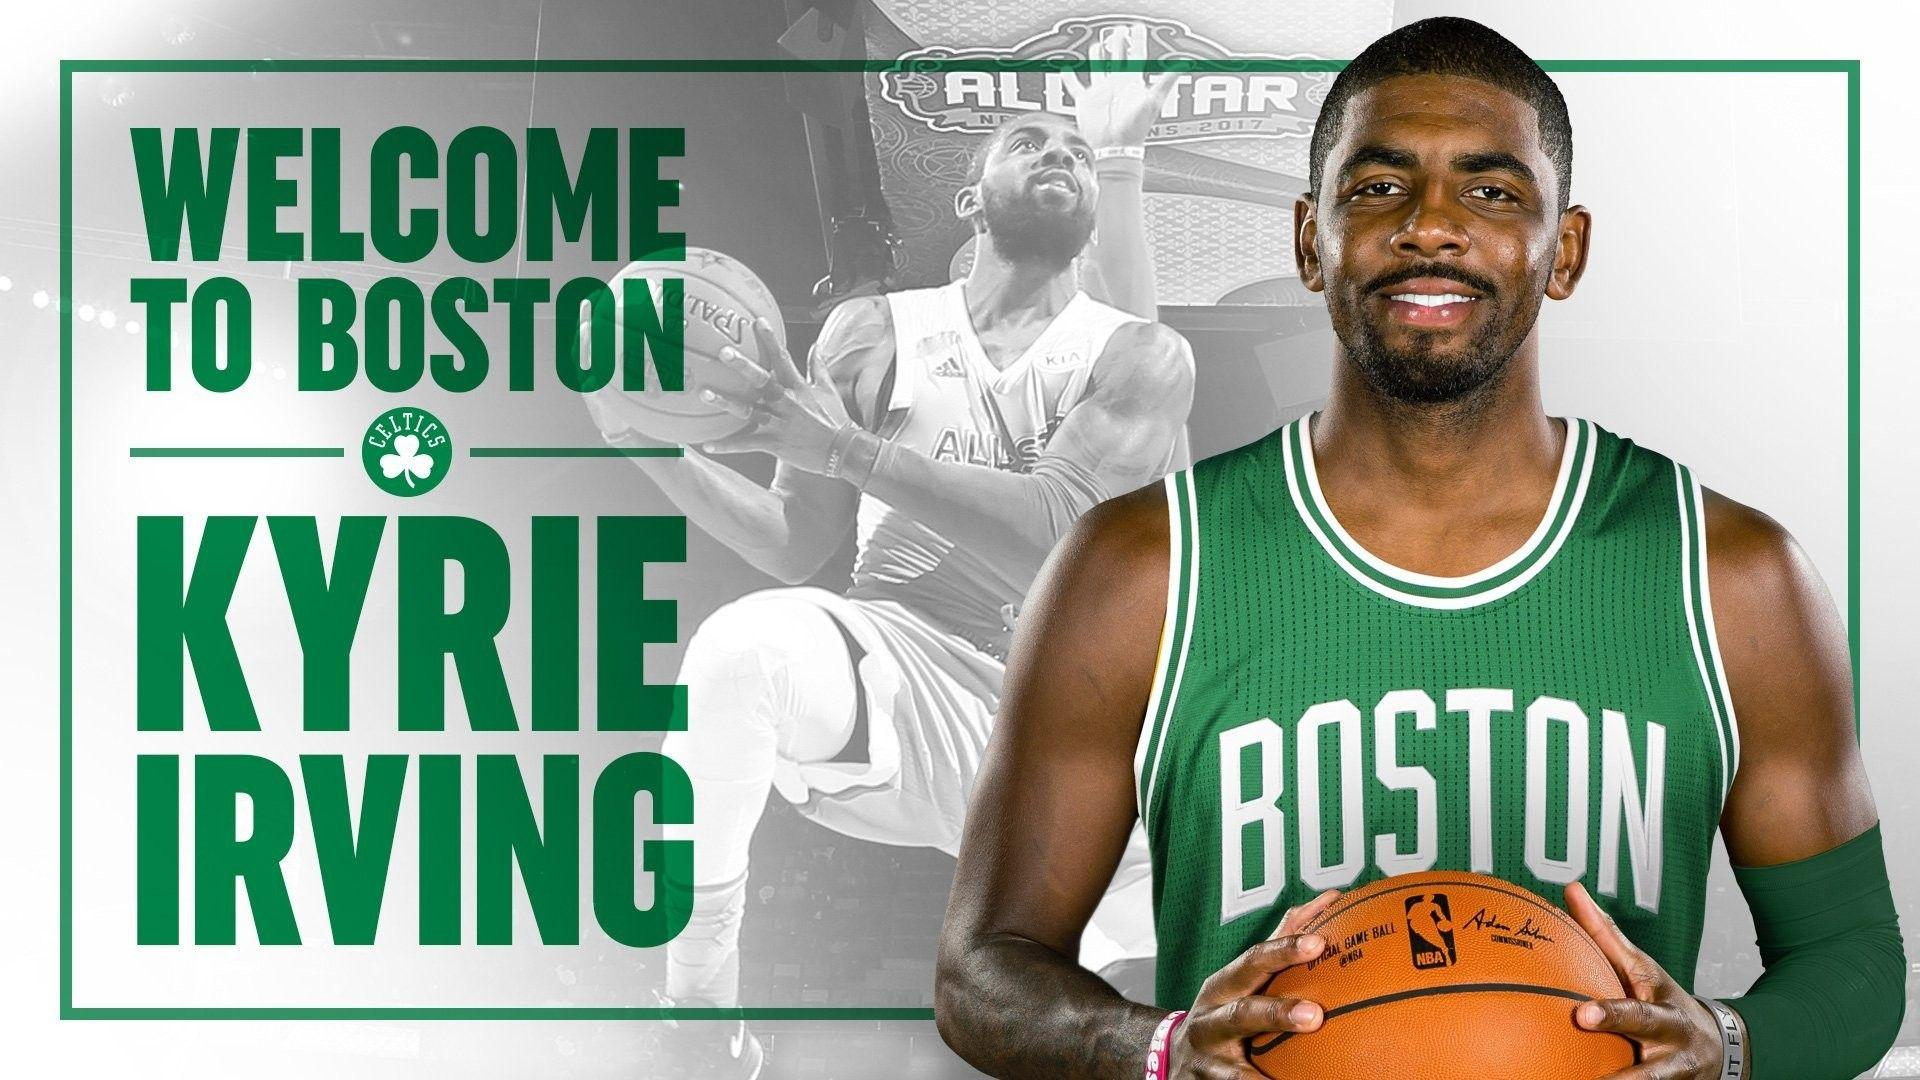 Kyrie Irving 2018 Wallpapers ·①